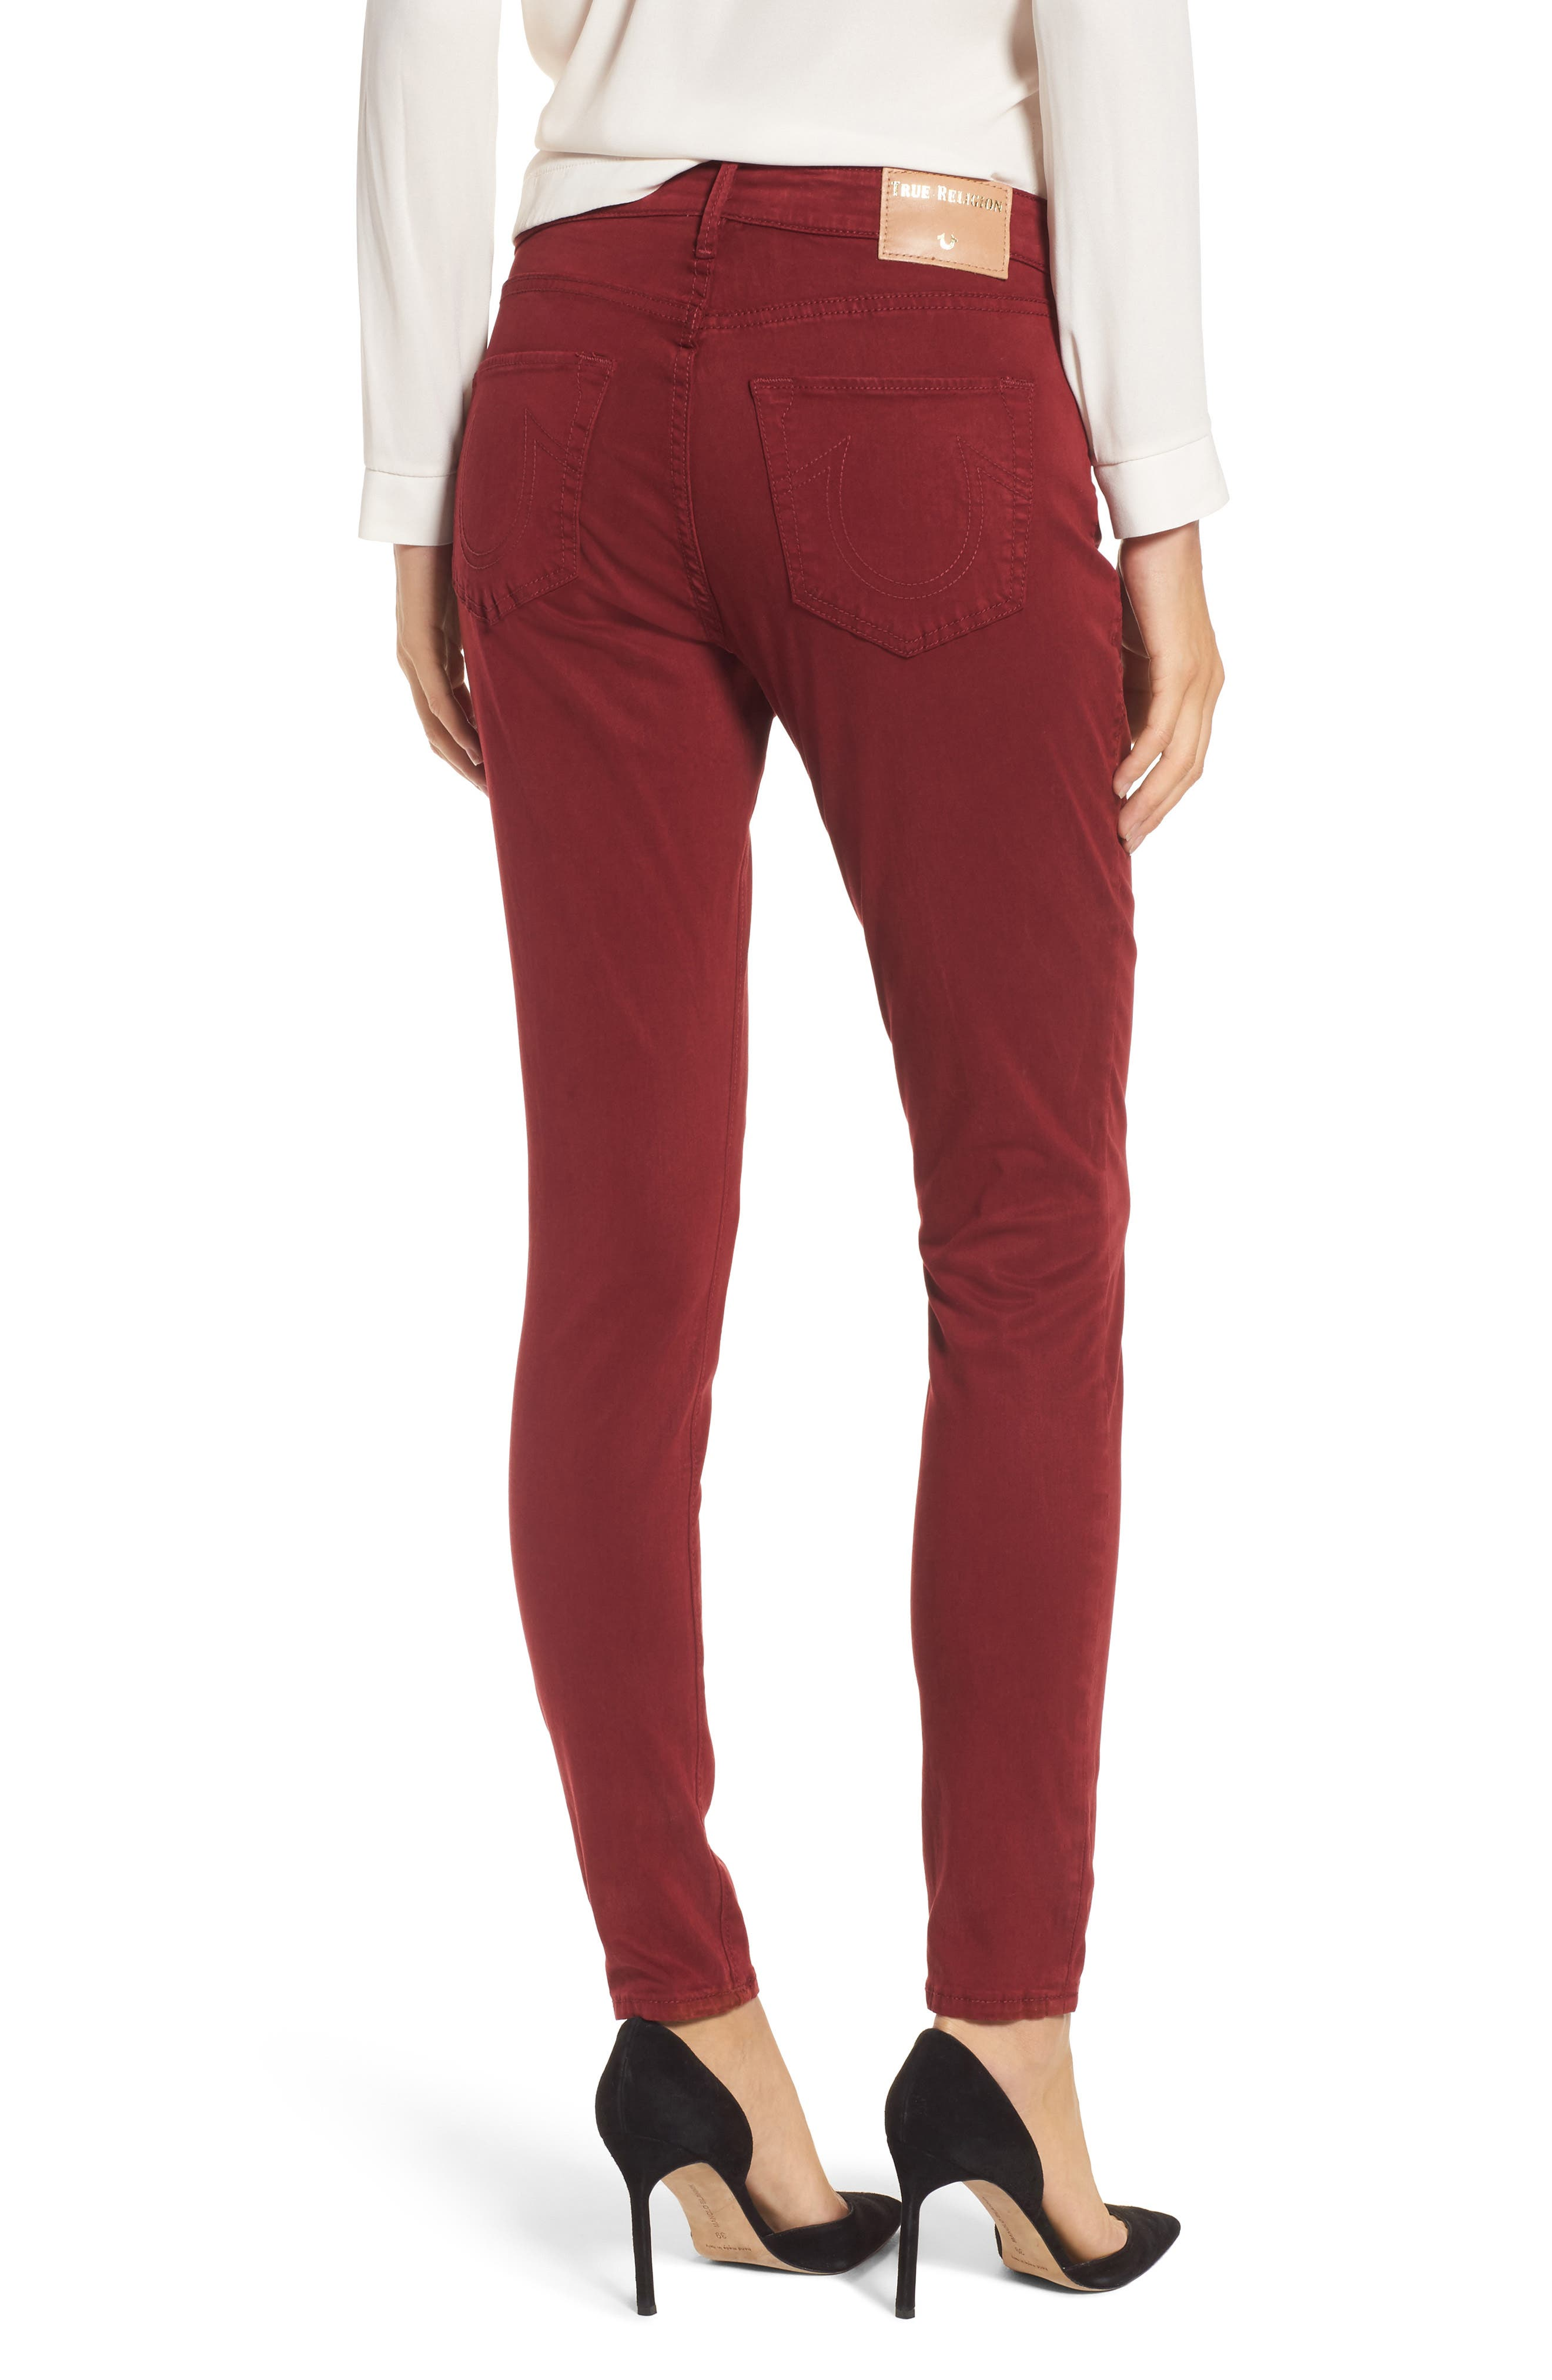 Jennie Curvy Skinny Jeans,                             Alternate thumbnail 2, color,                             Ox Blood